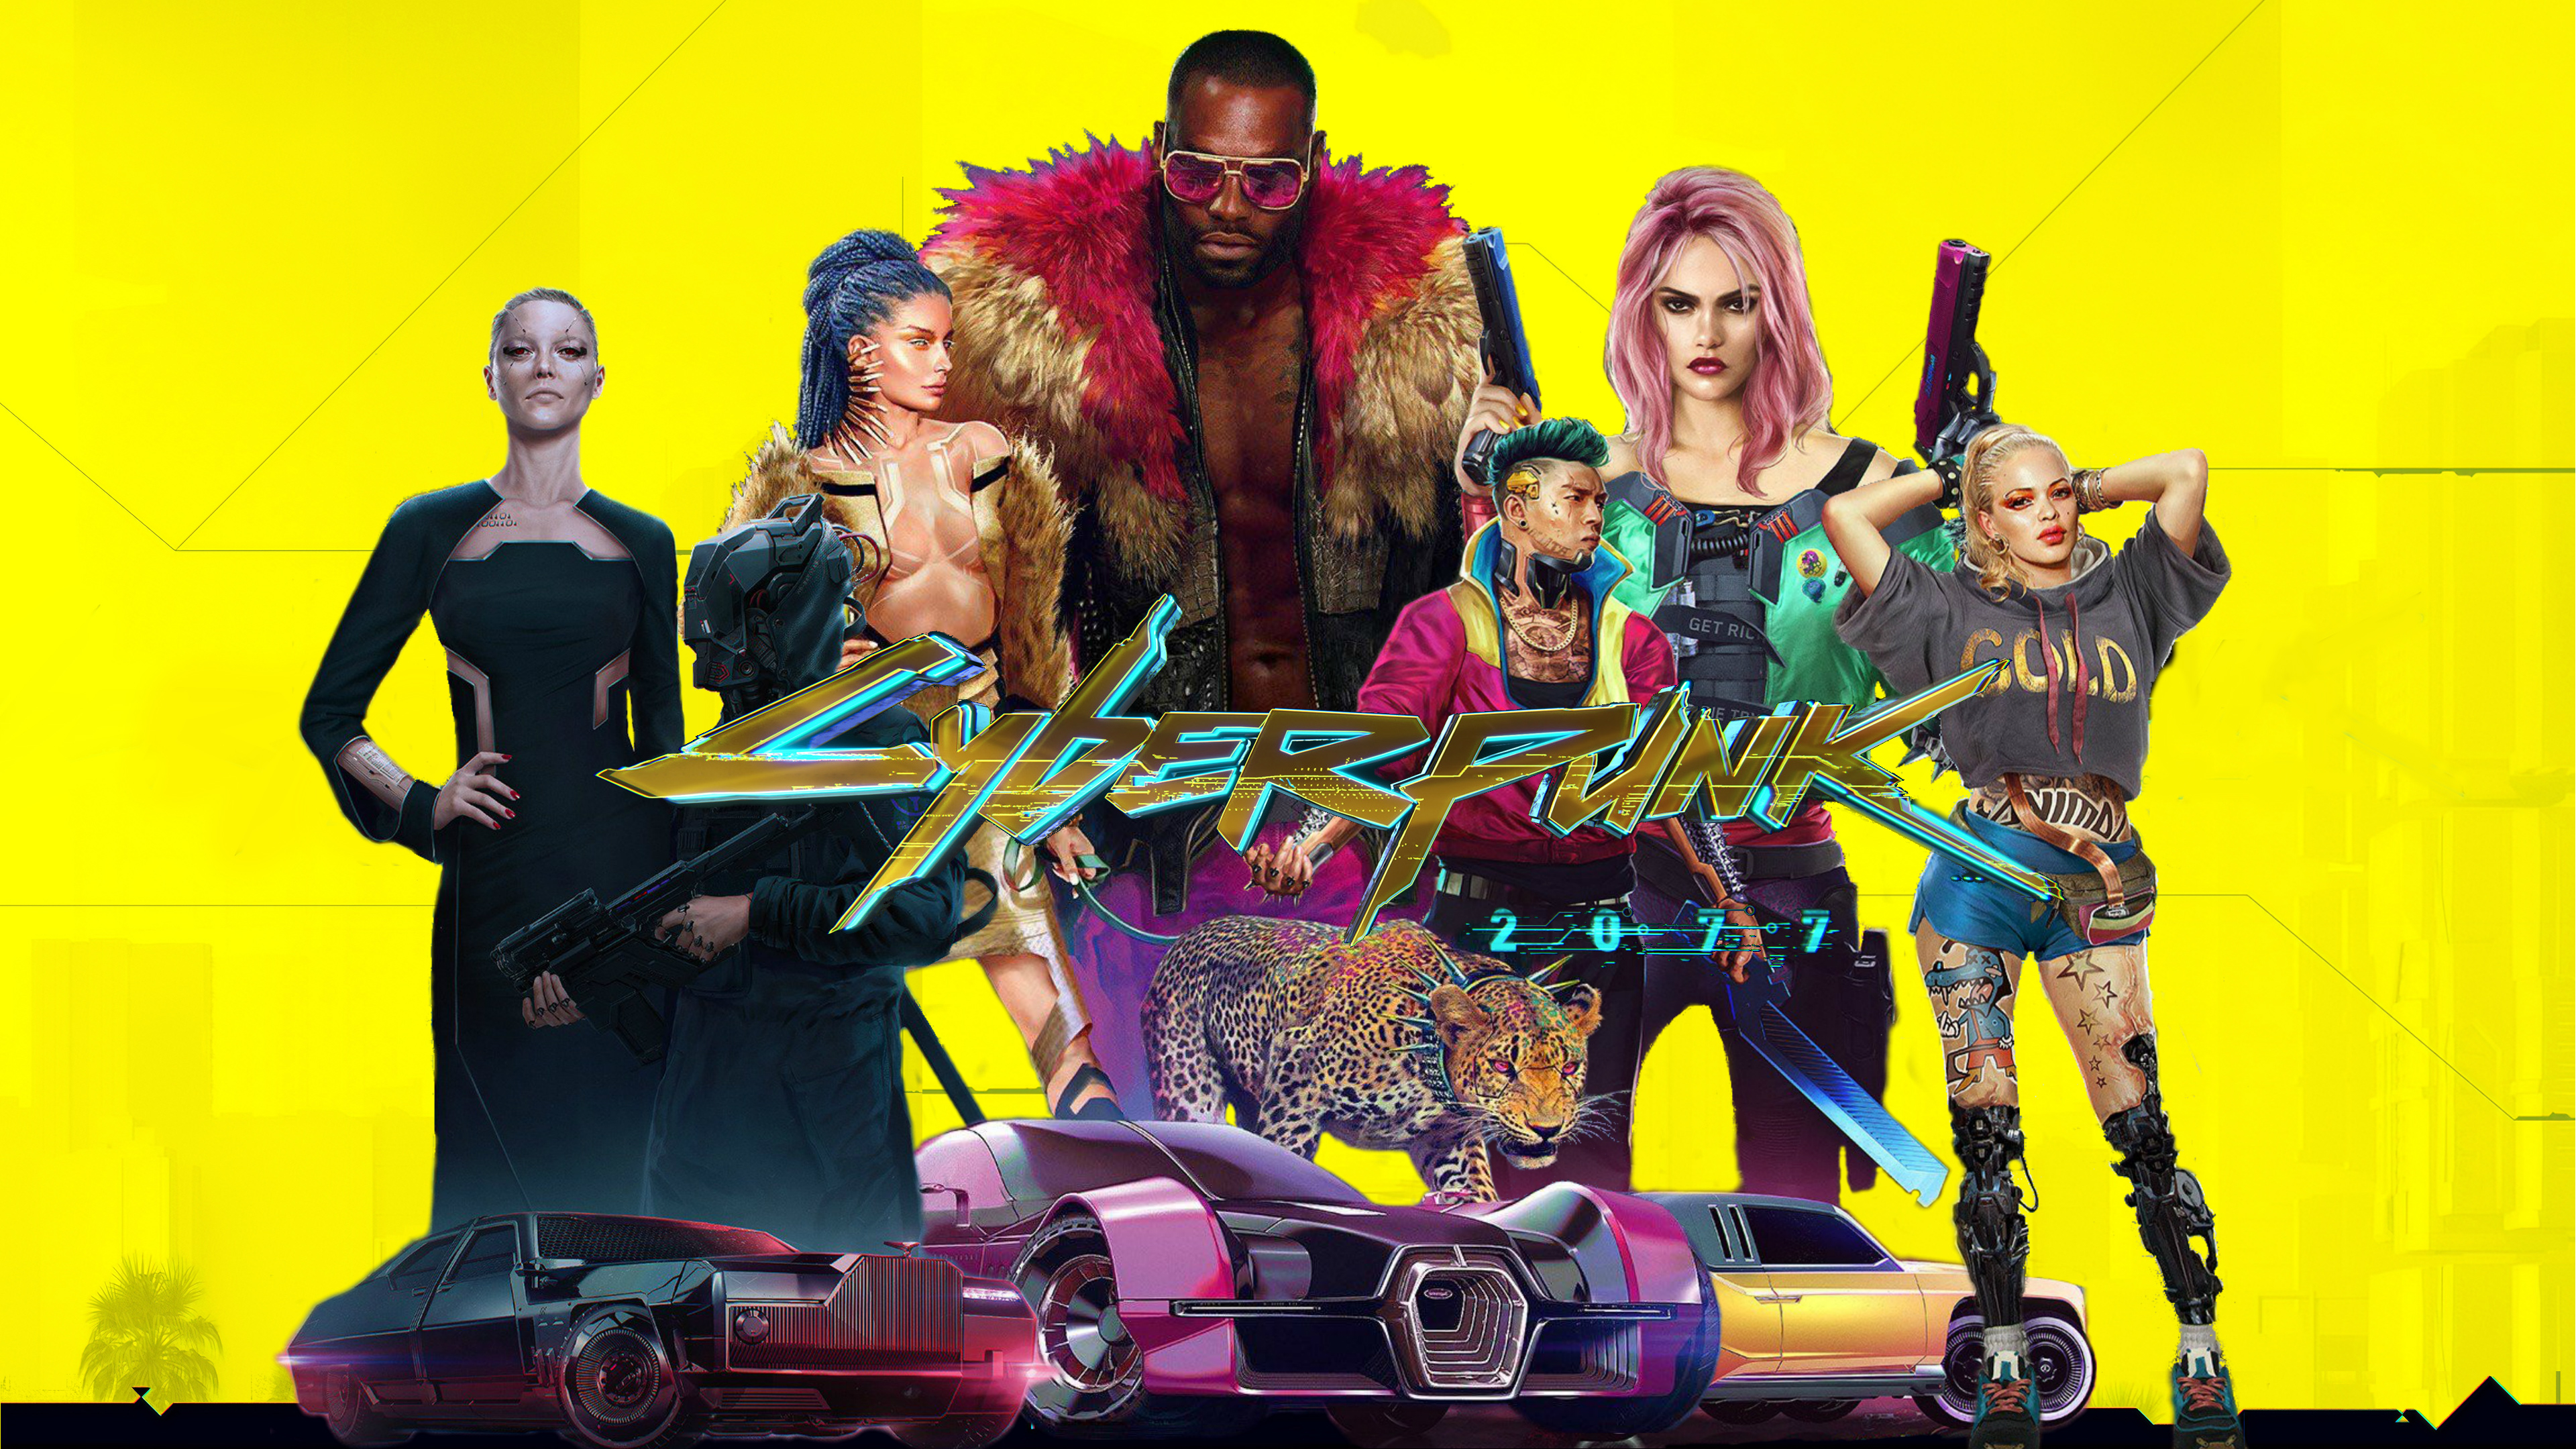 2560x1600 Cyberpunk 2077 4k Game 2560x1600 Resolution Wallpaper Hd Games 4k Wallpapers Images Photos And Background